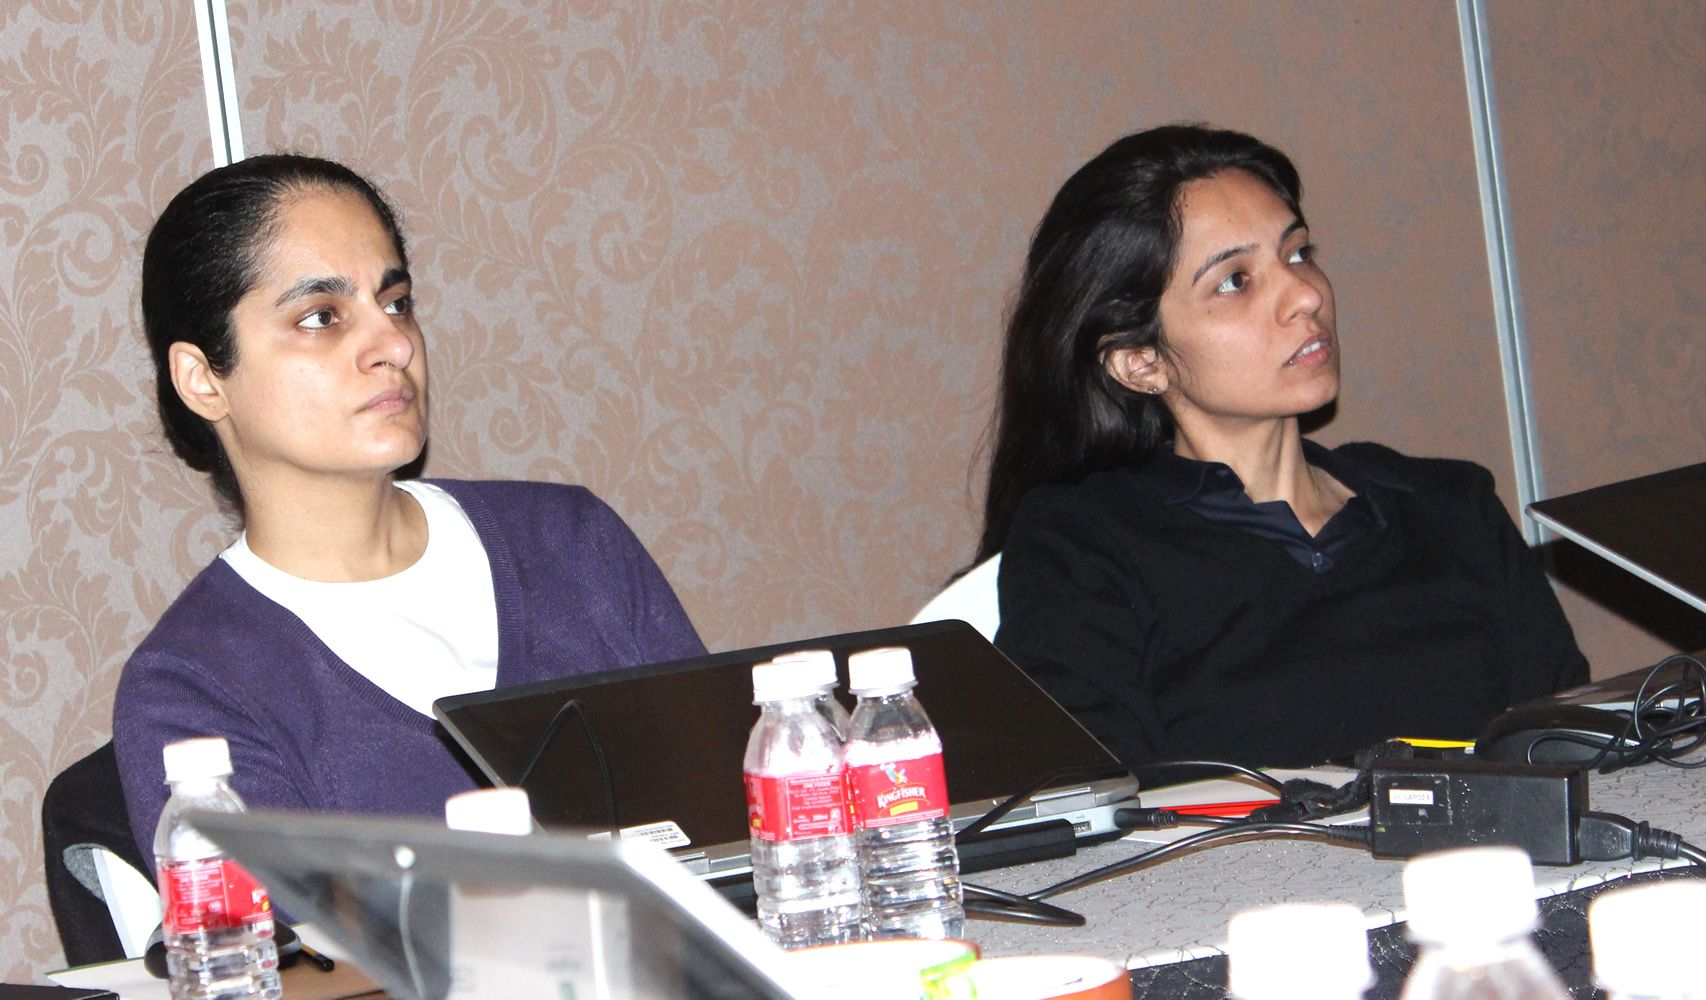 Geera Bellare, AVP - Learning Design and Sonal Sheth, AVP - Custom Learning Solutions completely engaged in the ongoing discussion